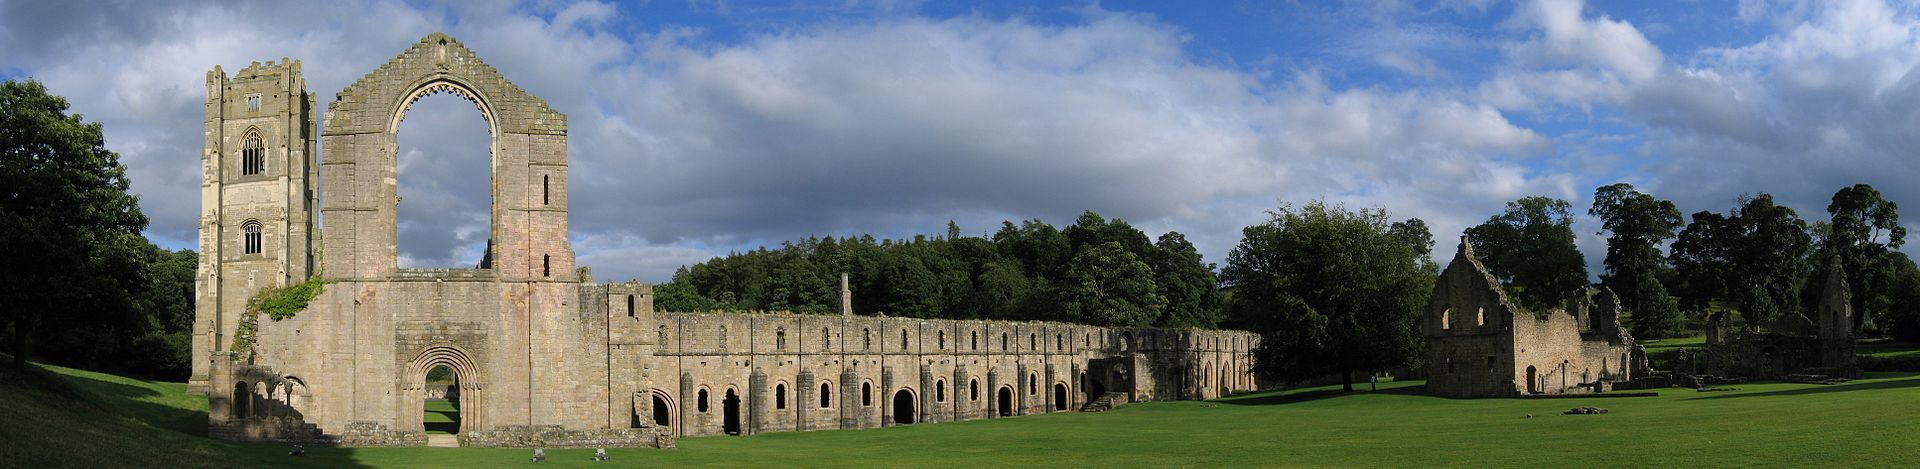 Fountains_Abbey_view_crop1_2005-08-27